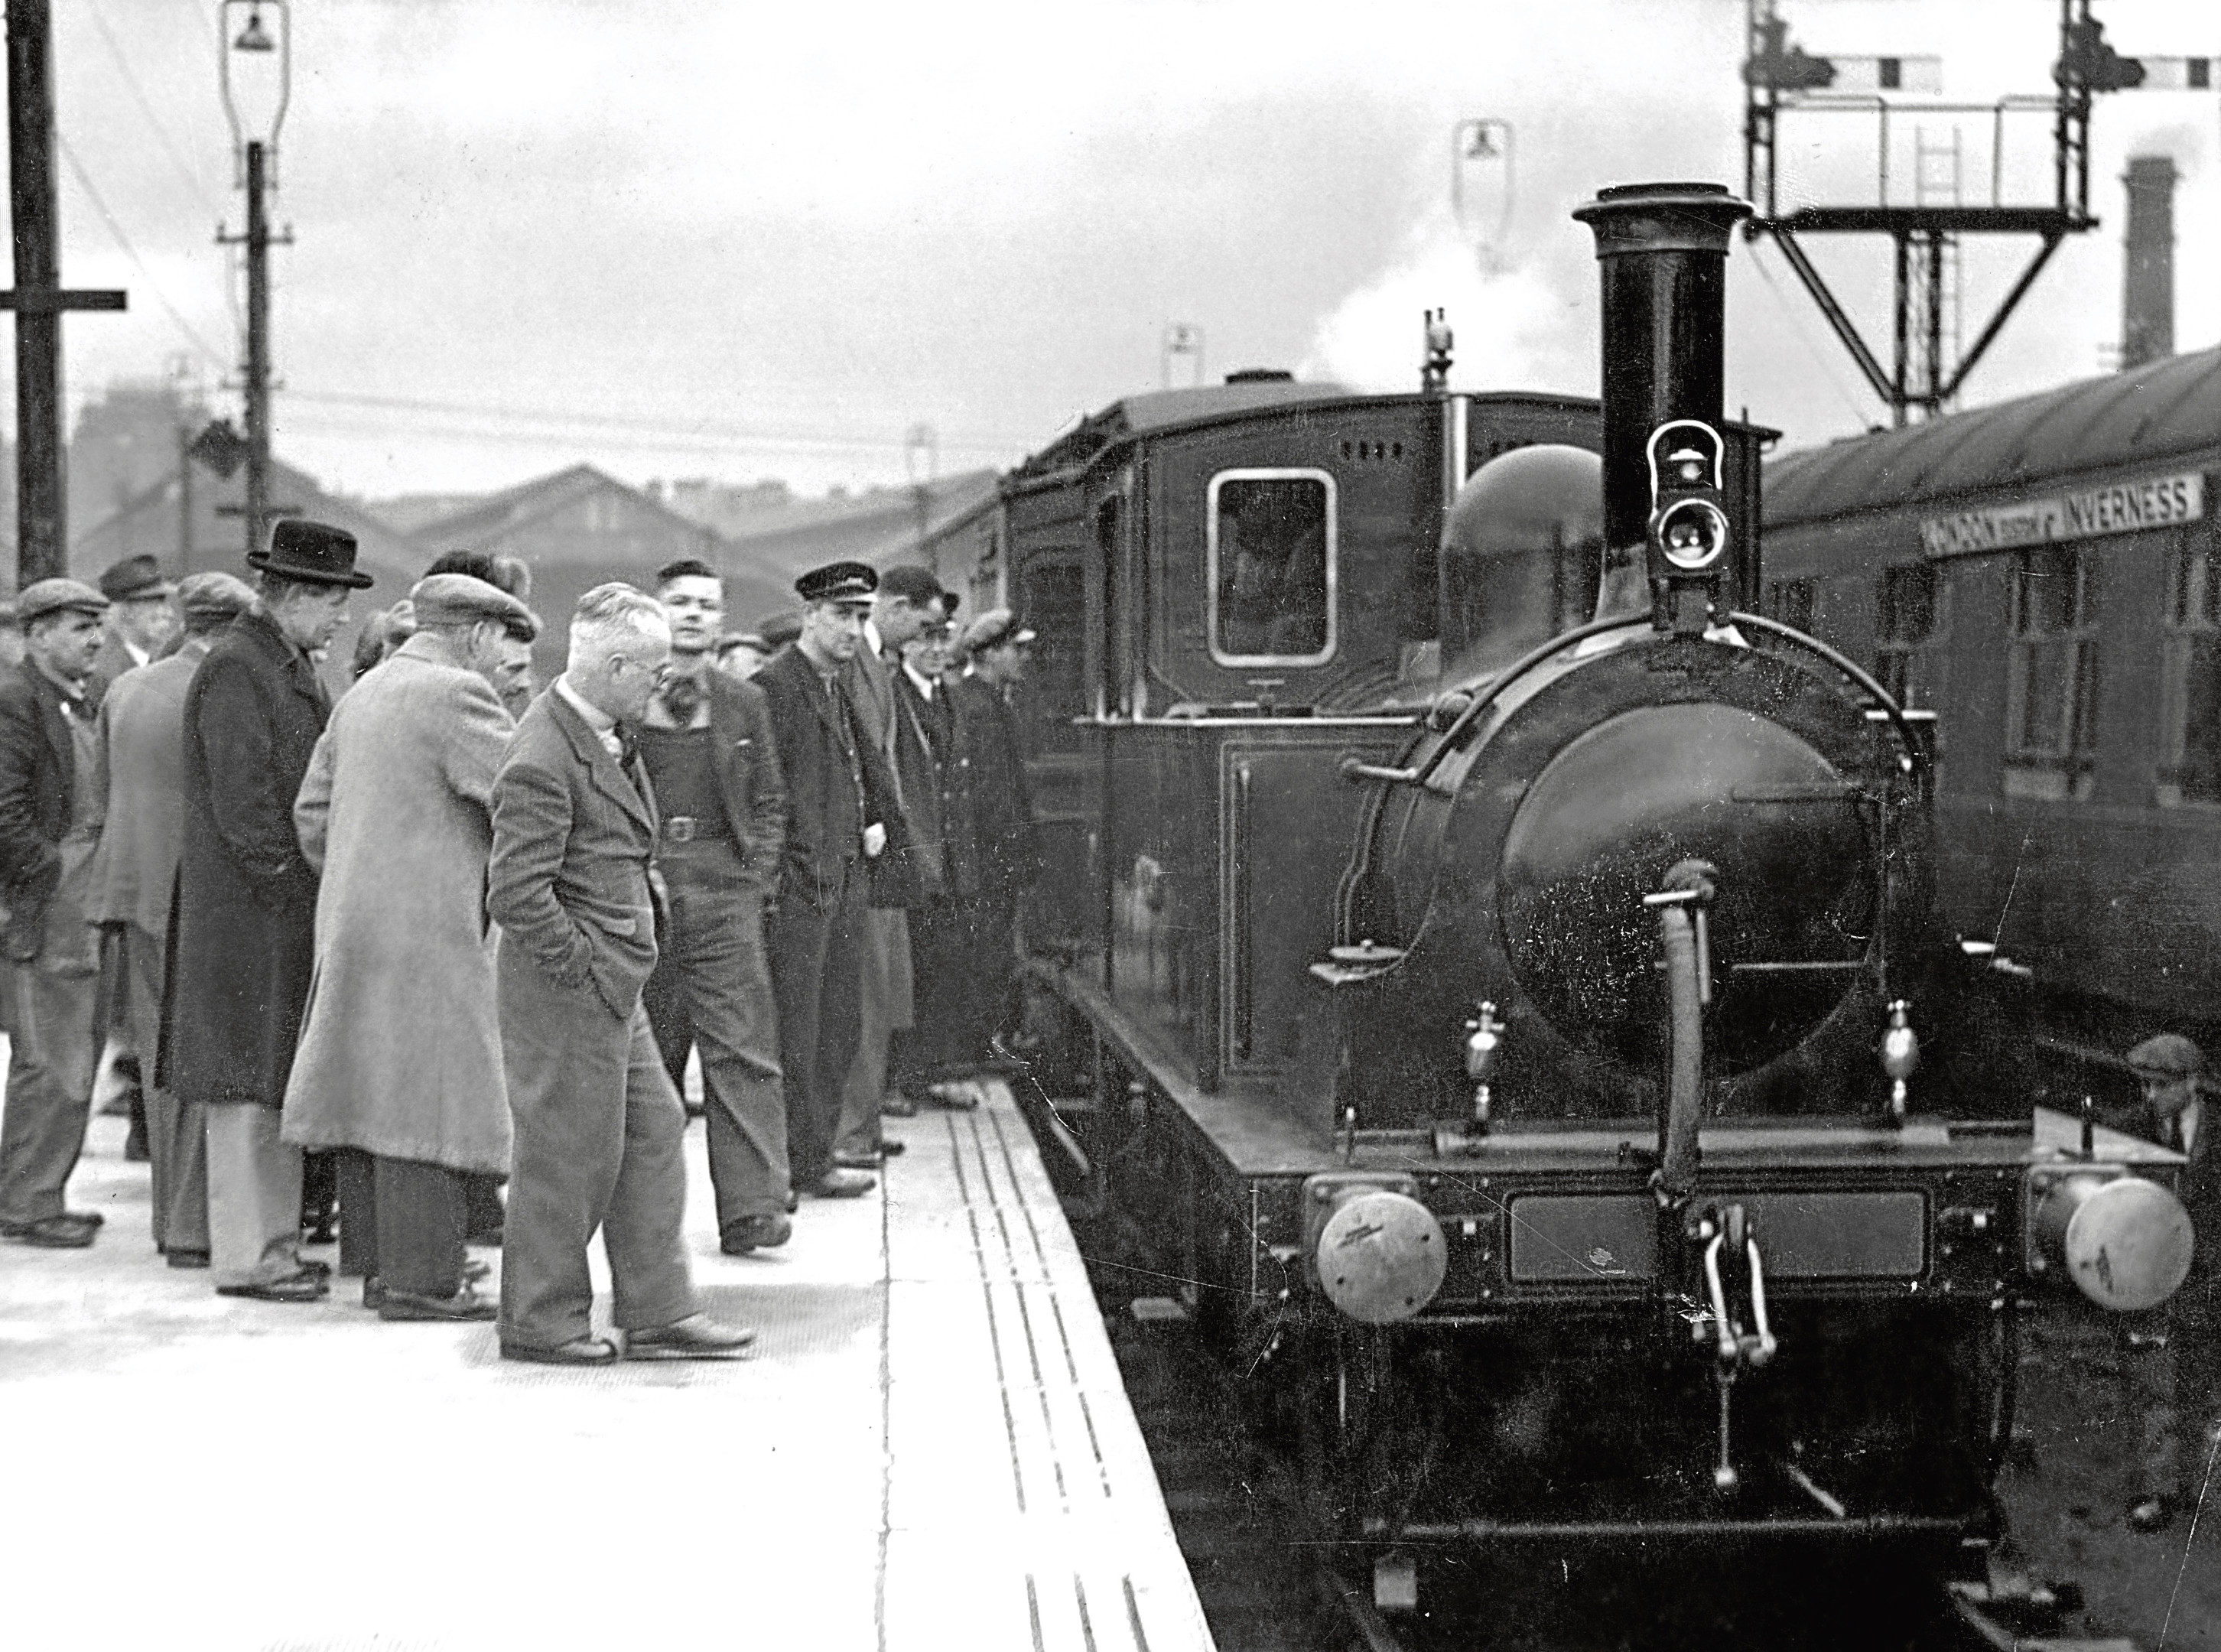 The steam locomotive City of Aberdeen being loaded on to a truck for transport to the Scottish Railway Preservation Society's Falkirk depot.